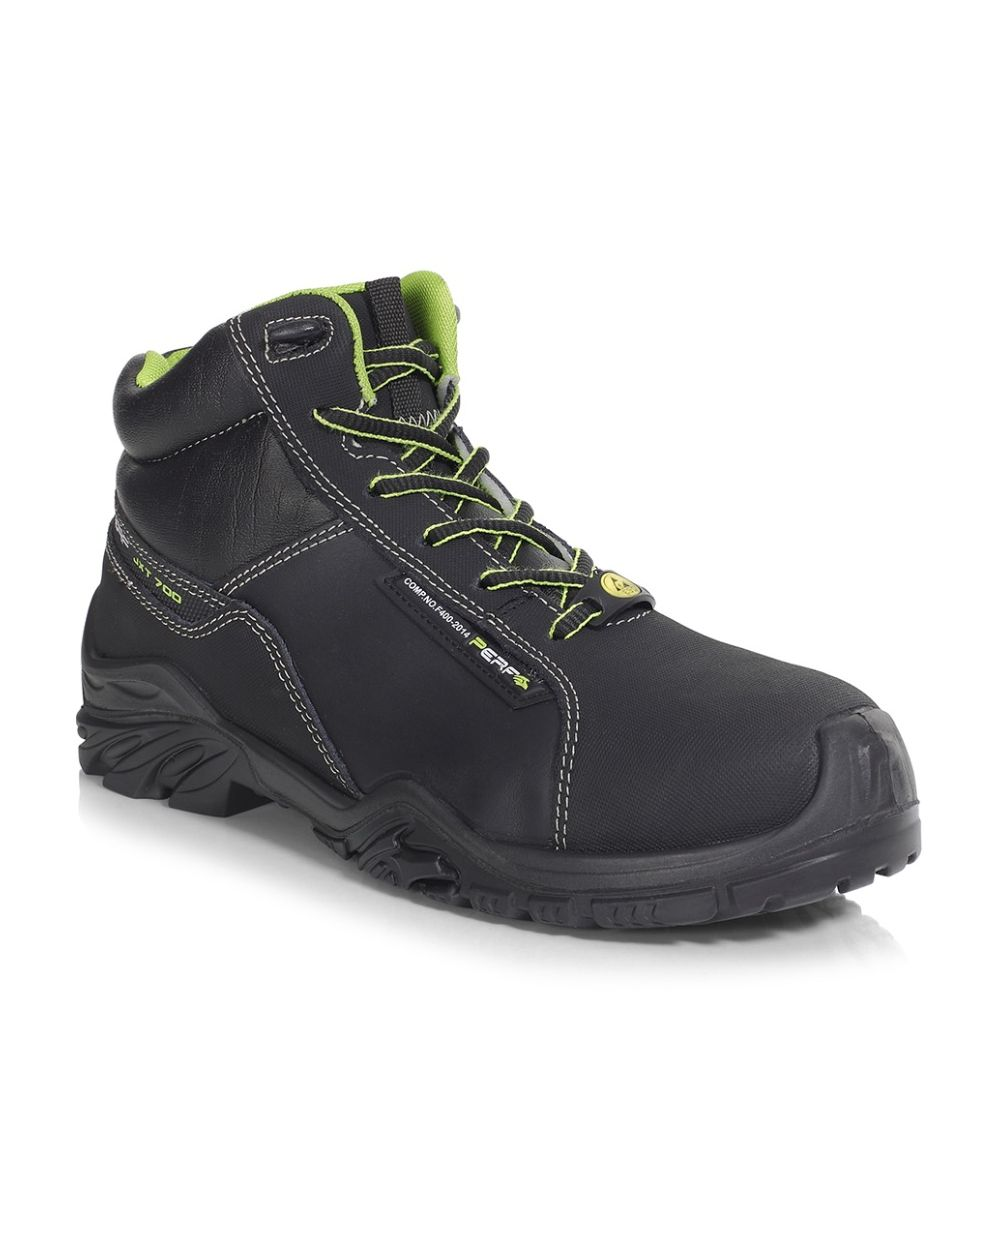 Endurance High – ESD Safety Hiker